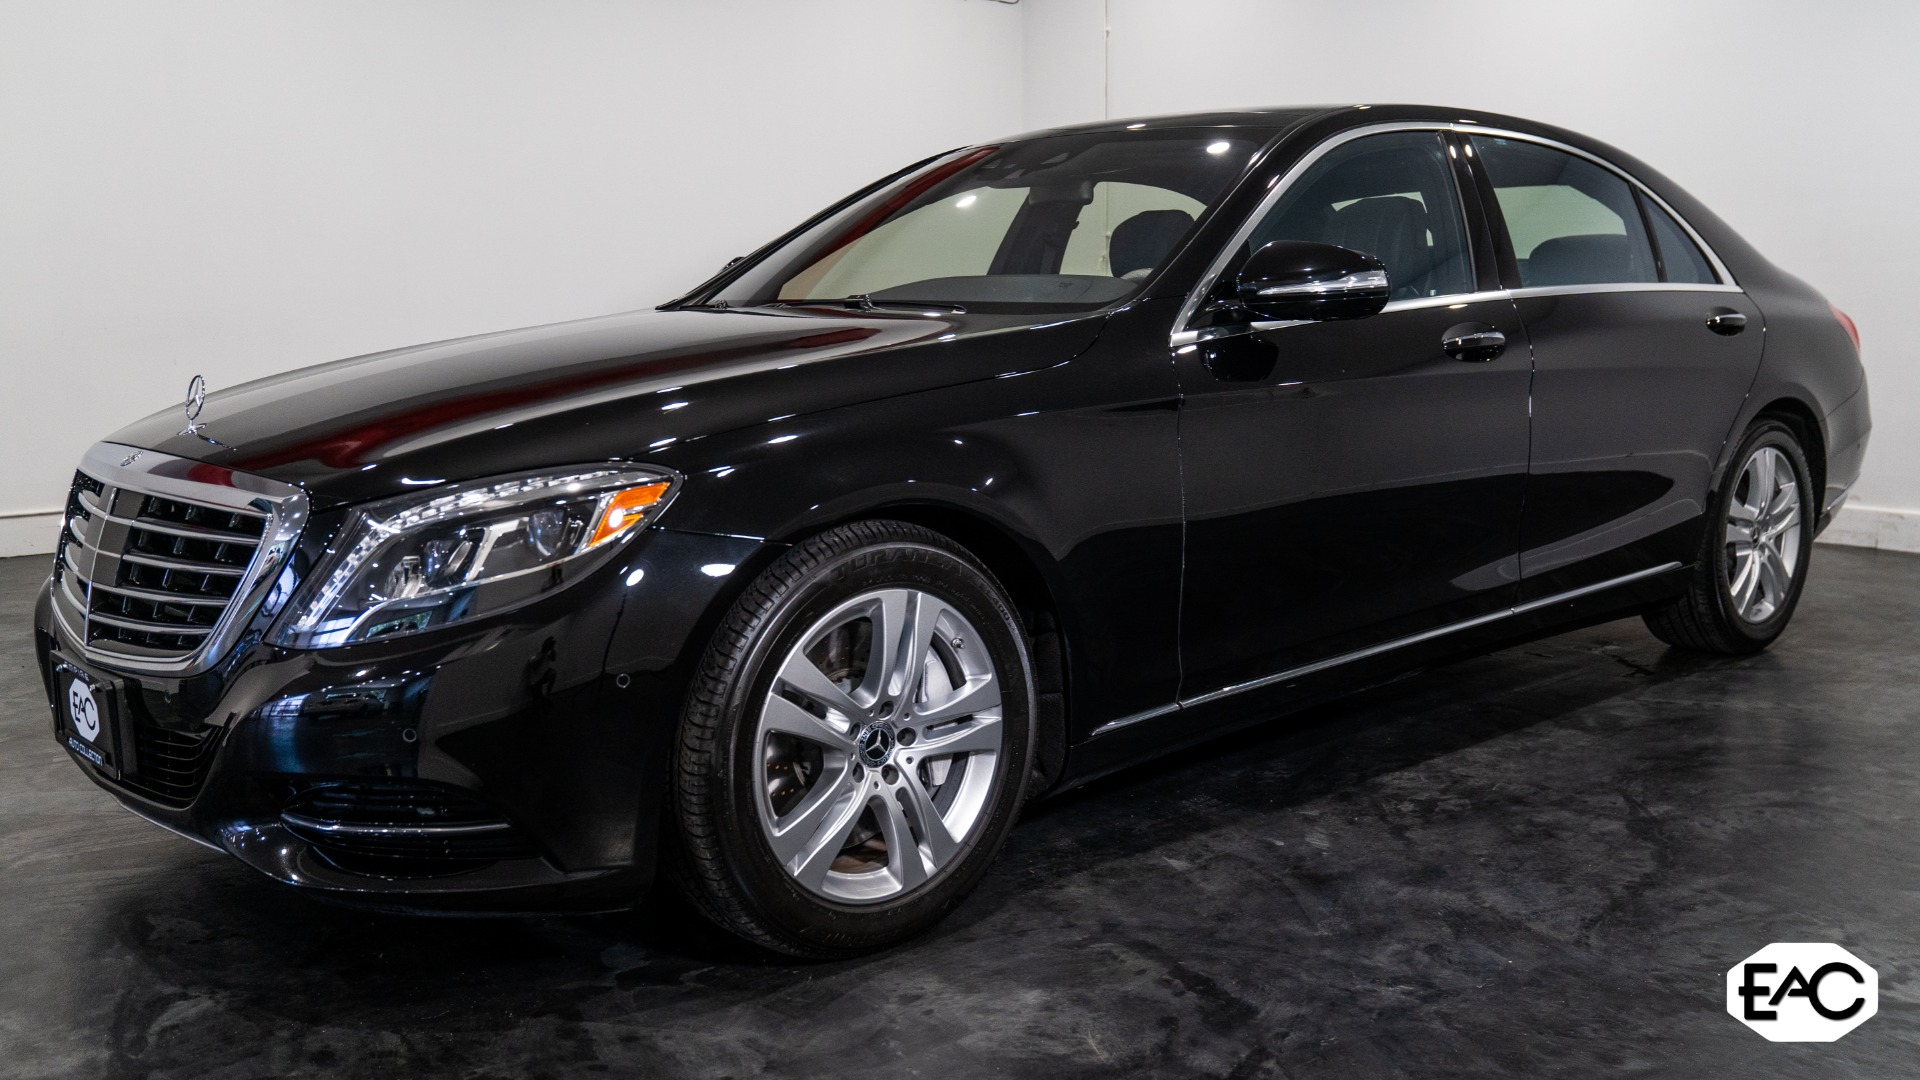 Used 2017 Mercedes-Benz S-Class S 550 4MATIC for sale $52,995 at Empire Auto Collection in Warren MI 48091 1